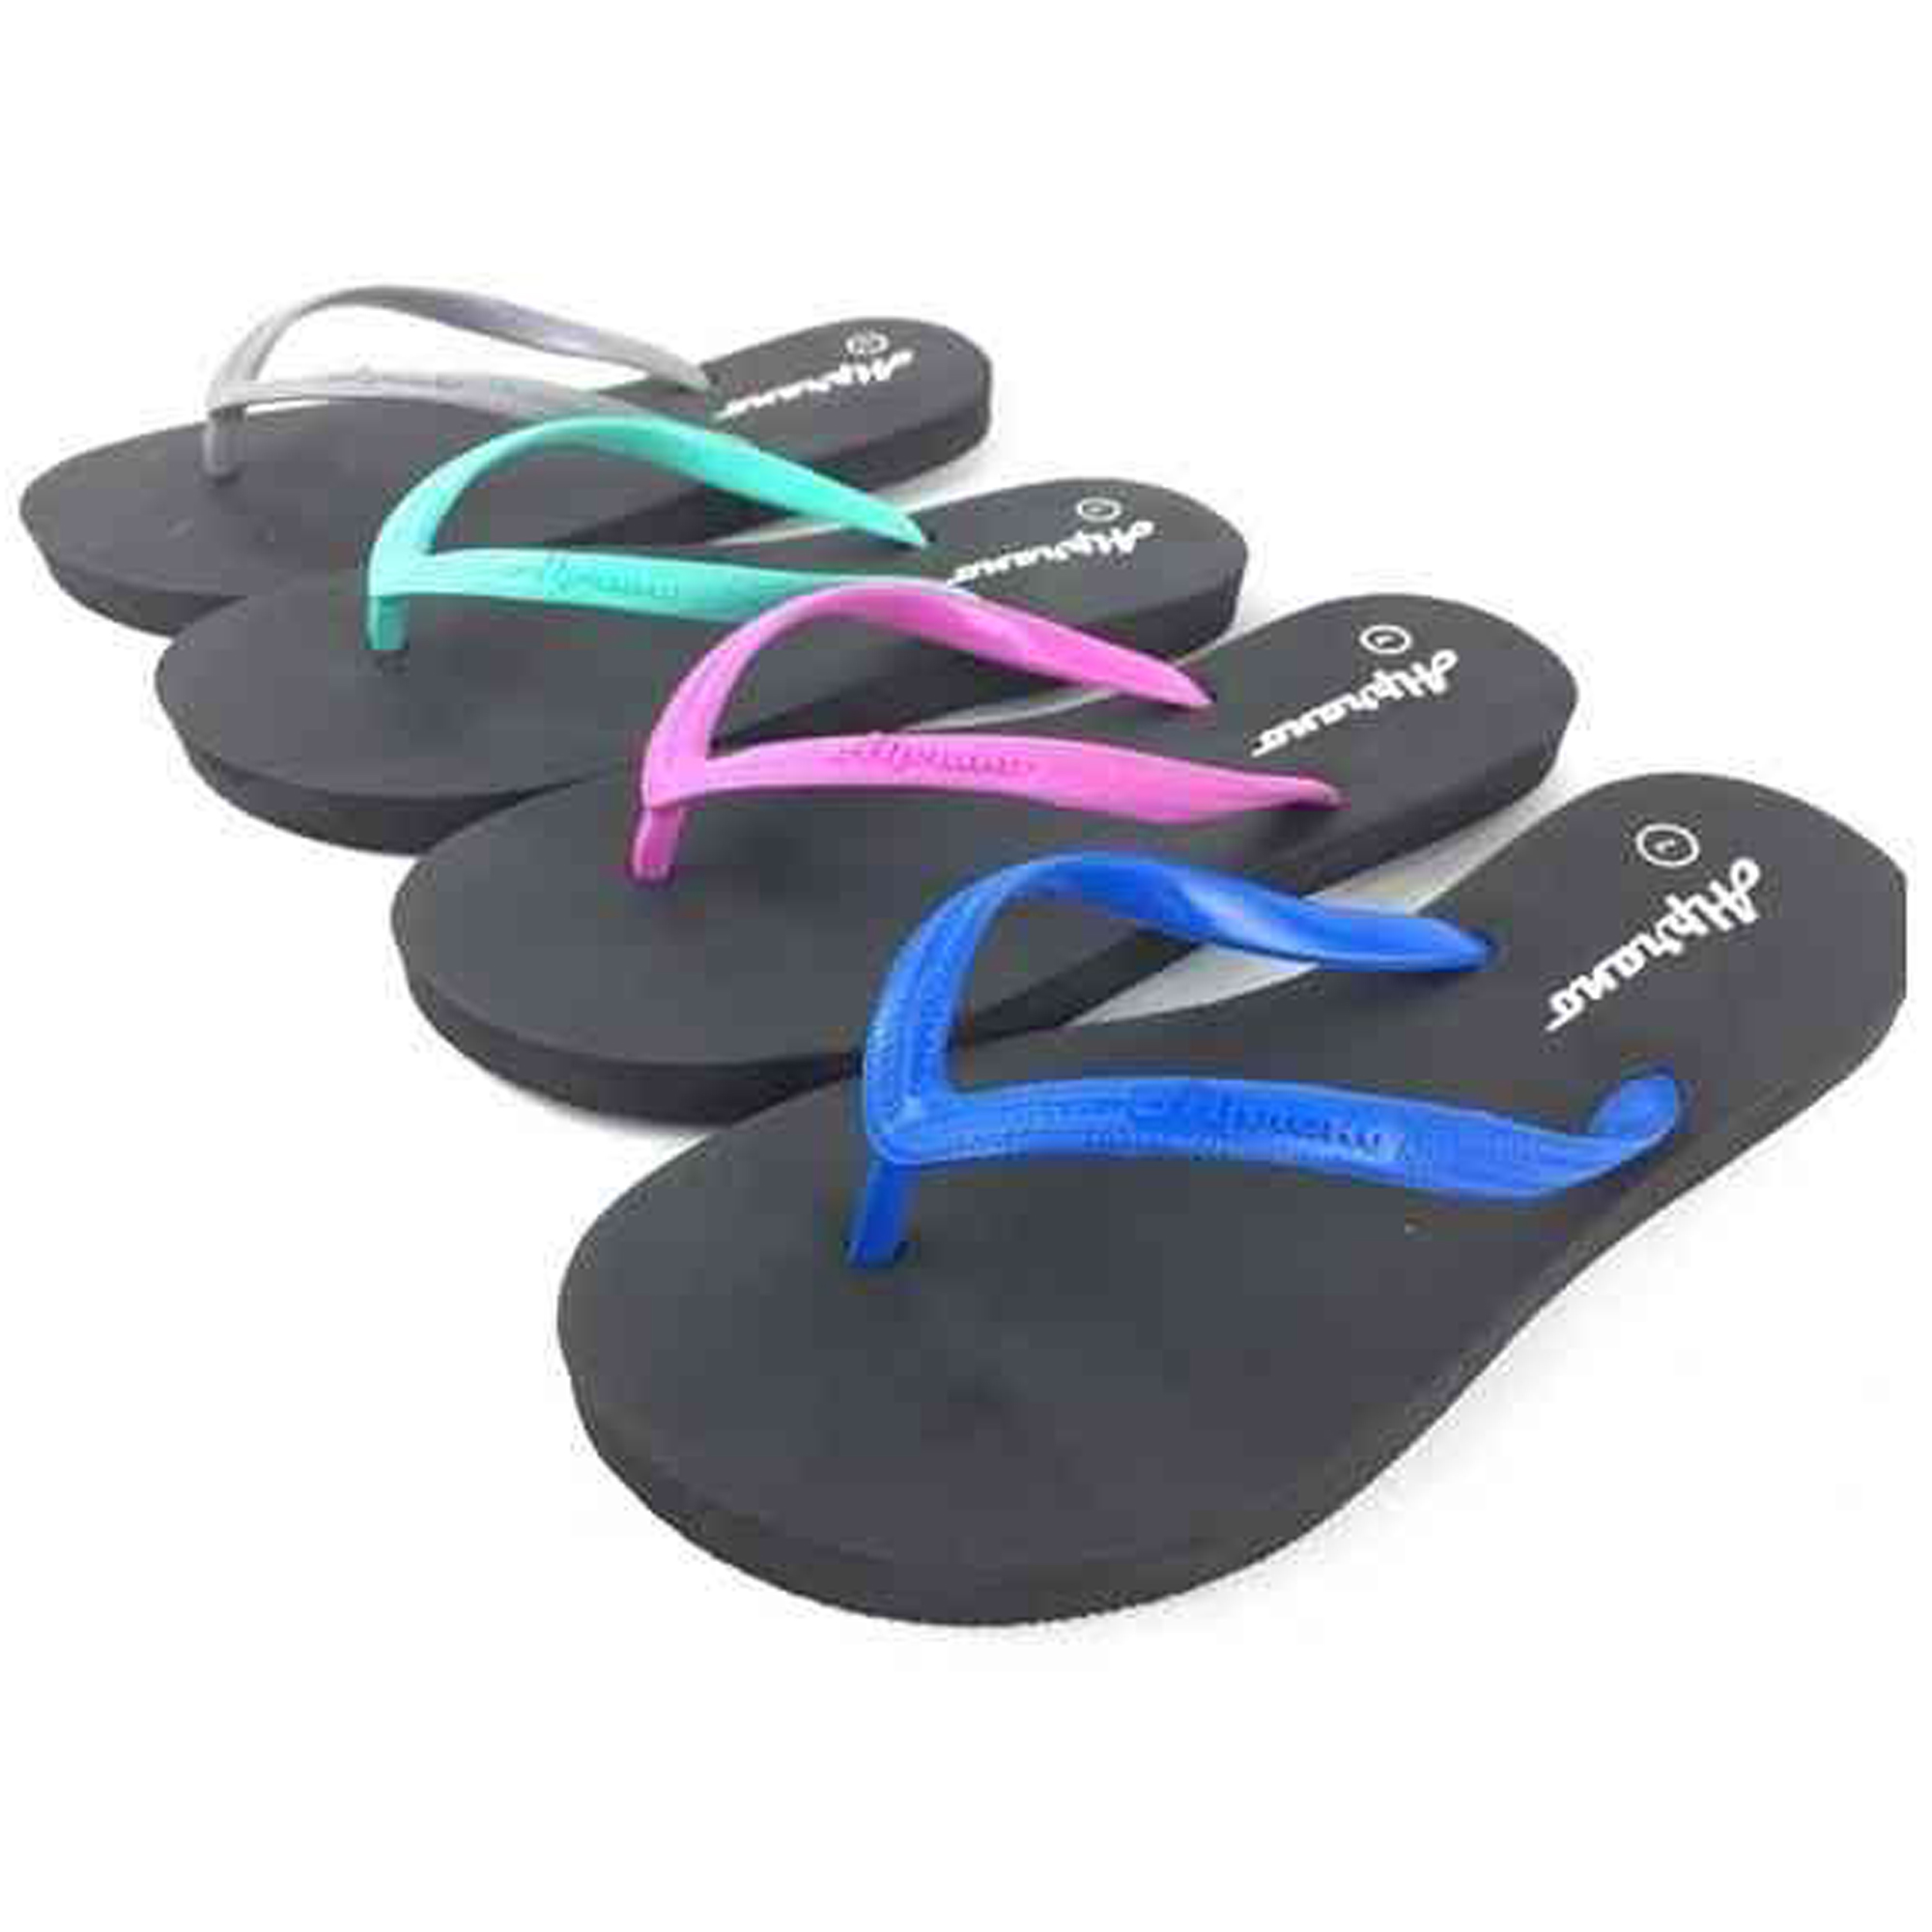 JN-APL07 (UK5) Alprano Slipper